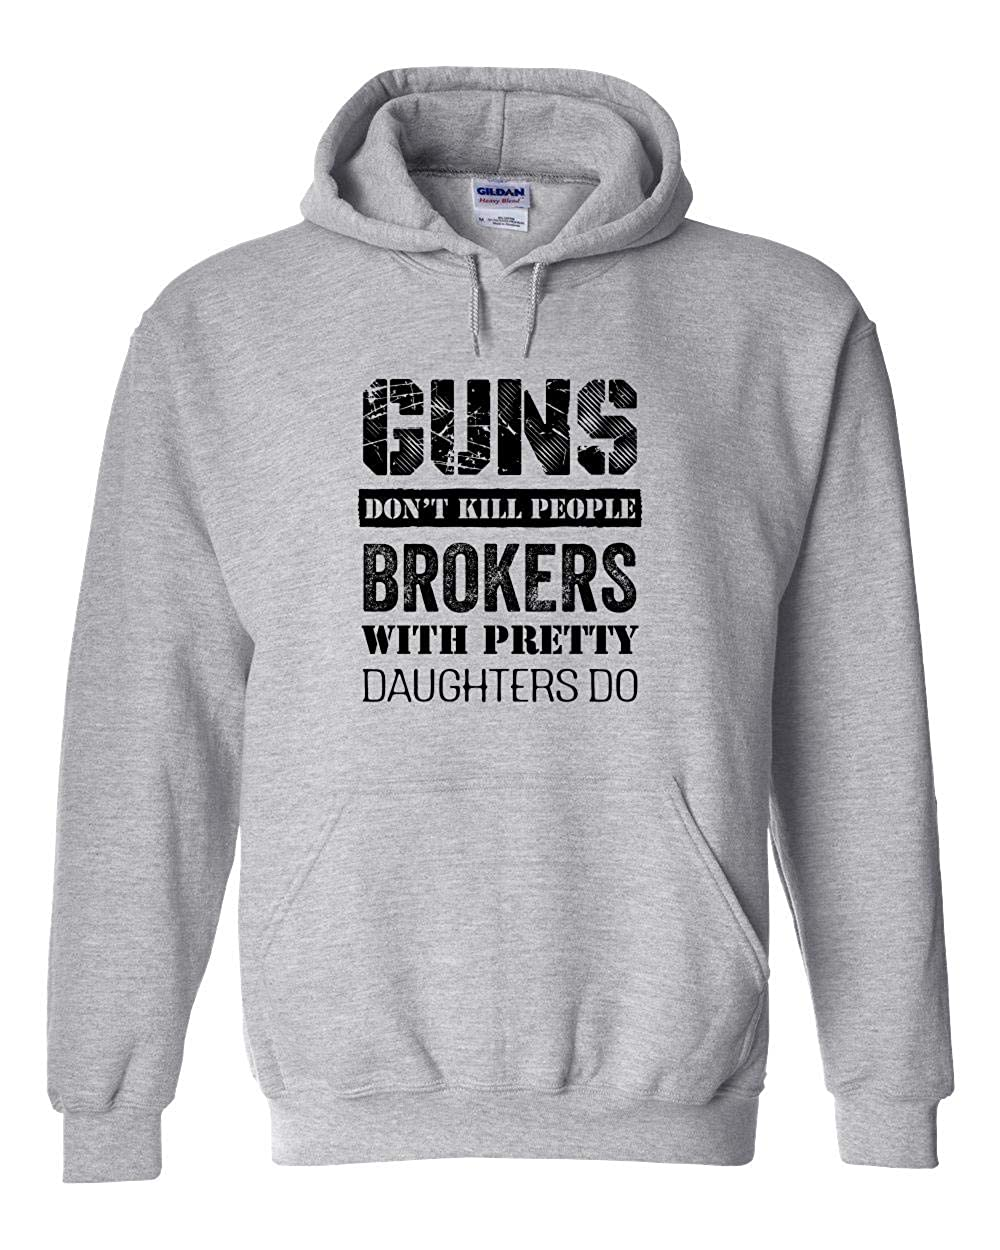 Uncensored Shirts Guns Dont Kill People Brokers with Pretty Daughters Do Hoodie